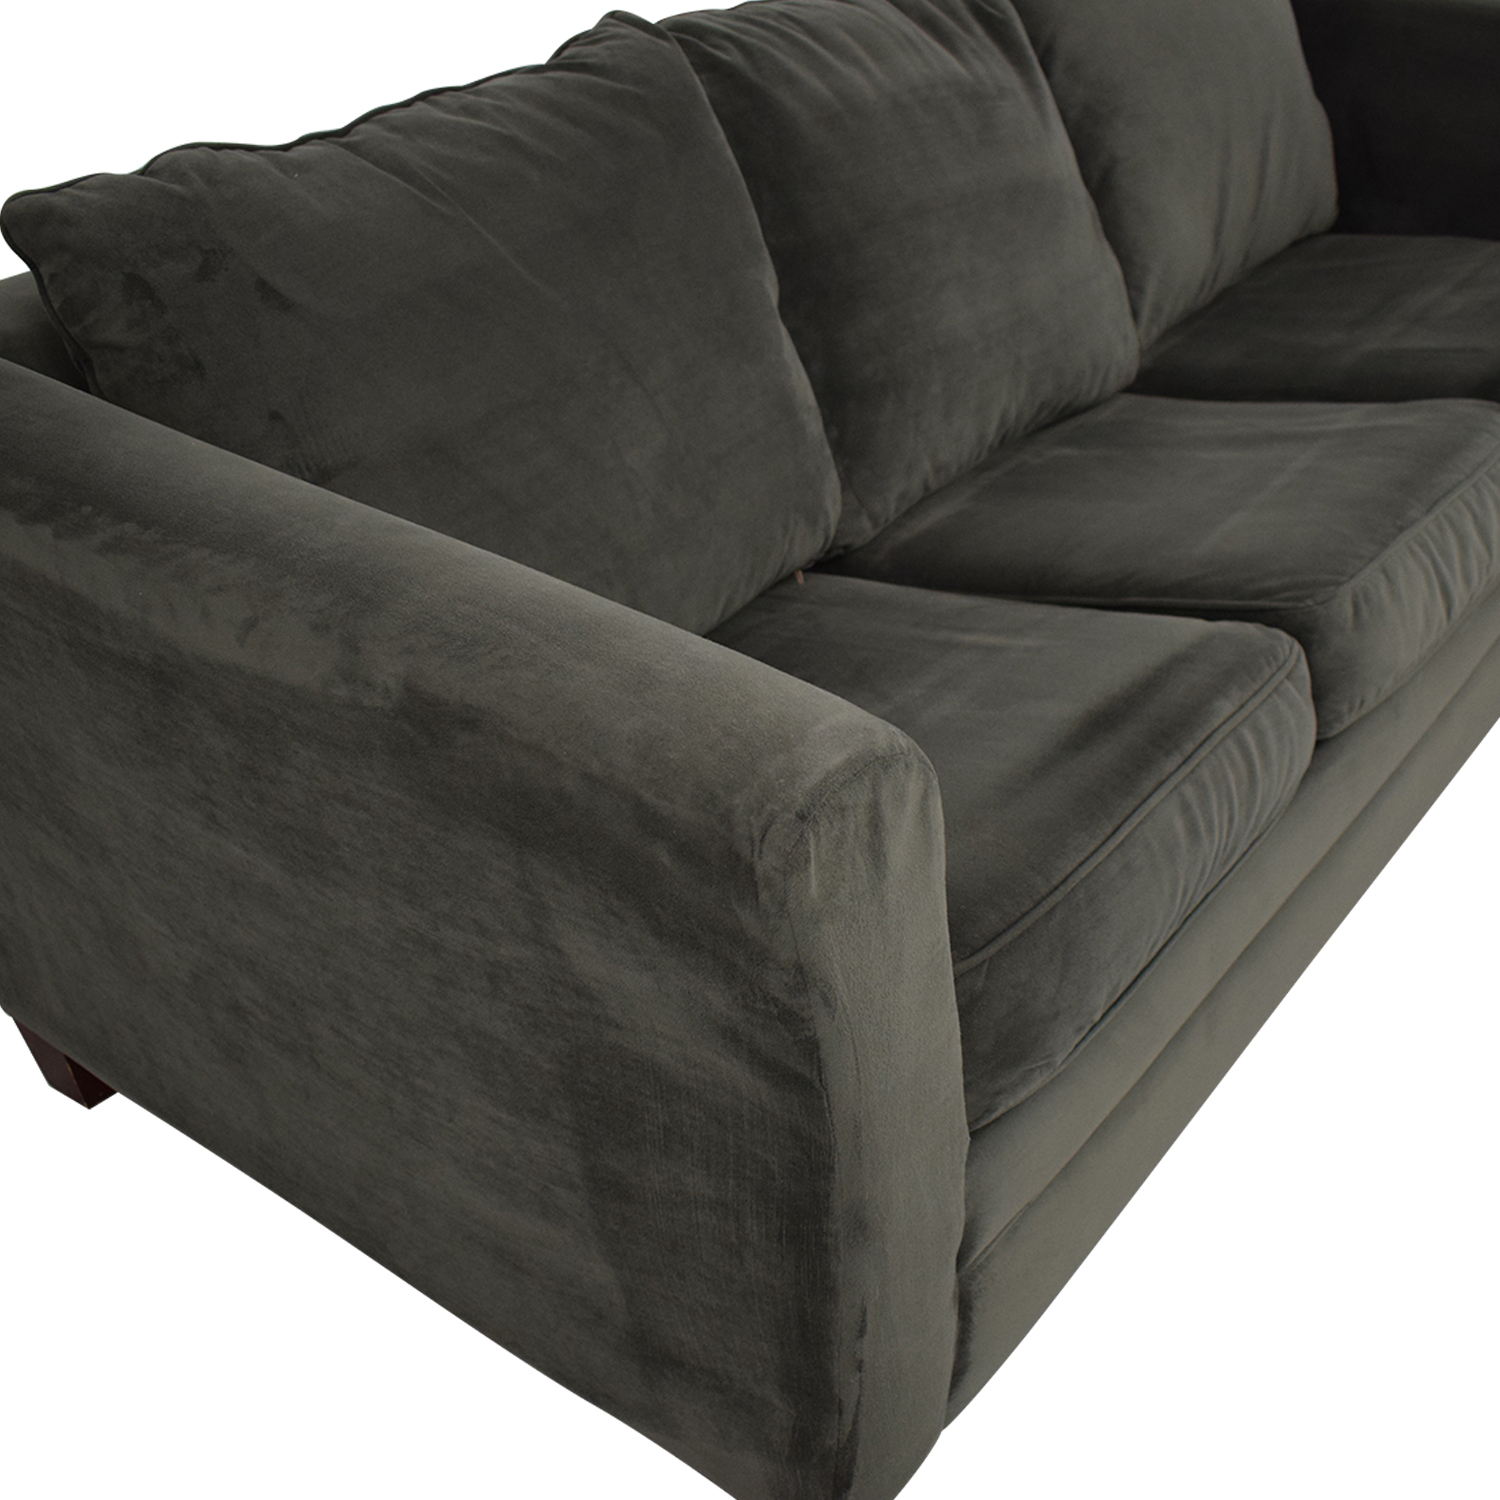 Klaussner Klaussner Taylor Queen Sleeper Sofa price